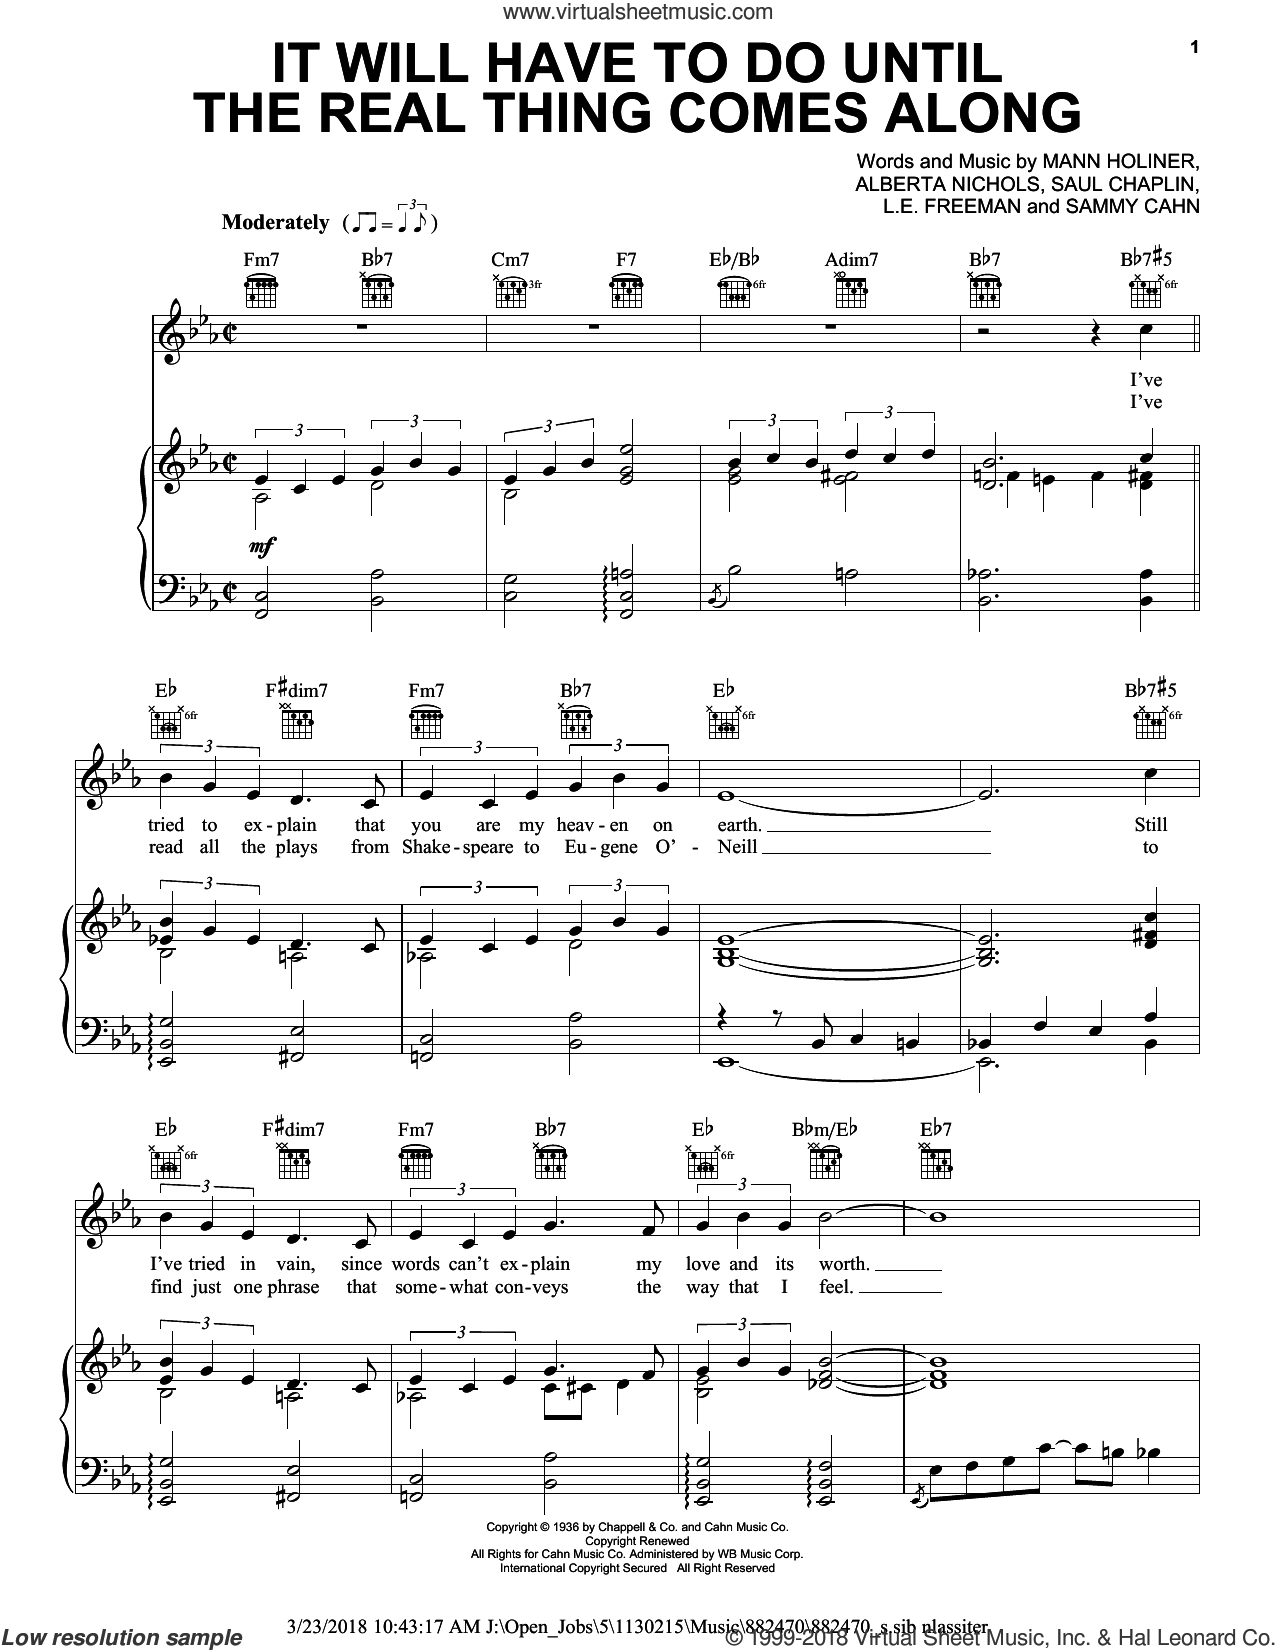 It Will Have To Do Until The Real Thing Comes Along (Until The Real Thing Comes Along) sheet music for voice, piano or guitar by Duke Ellington, James Booker, Alberta Nichols, L.E. Freeman, Mann Holiner, Sammy Cahn and Saul Chaplin, intermediate skill level